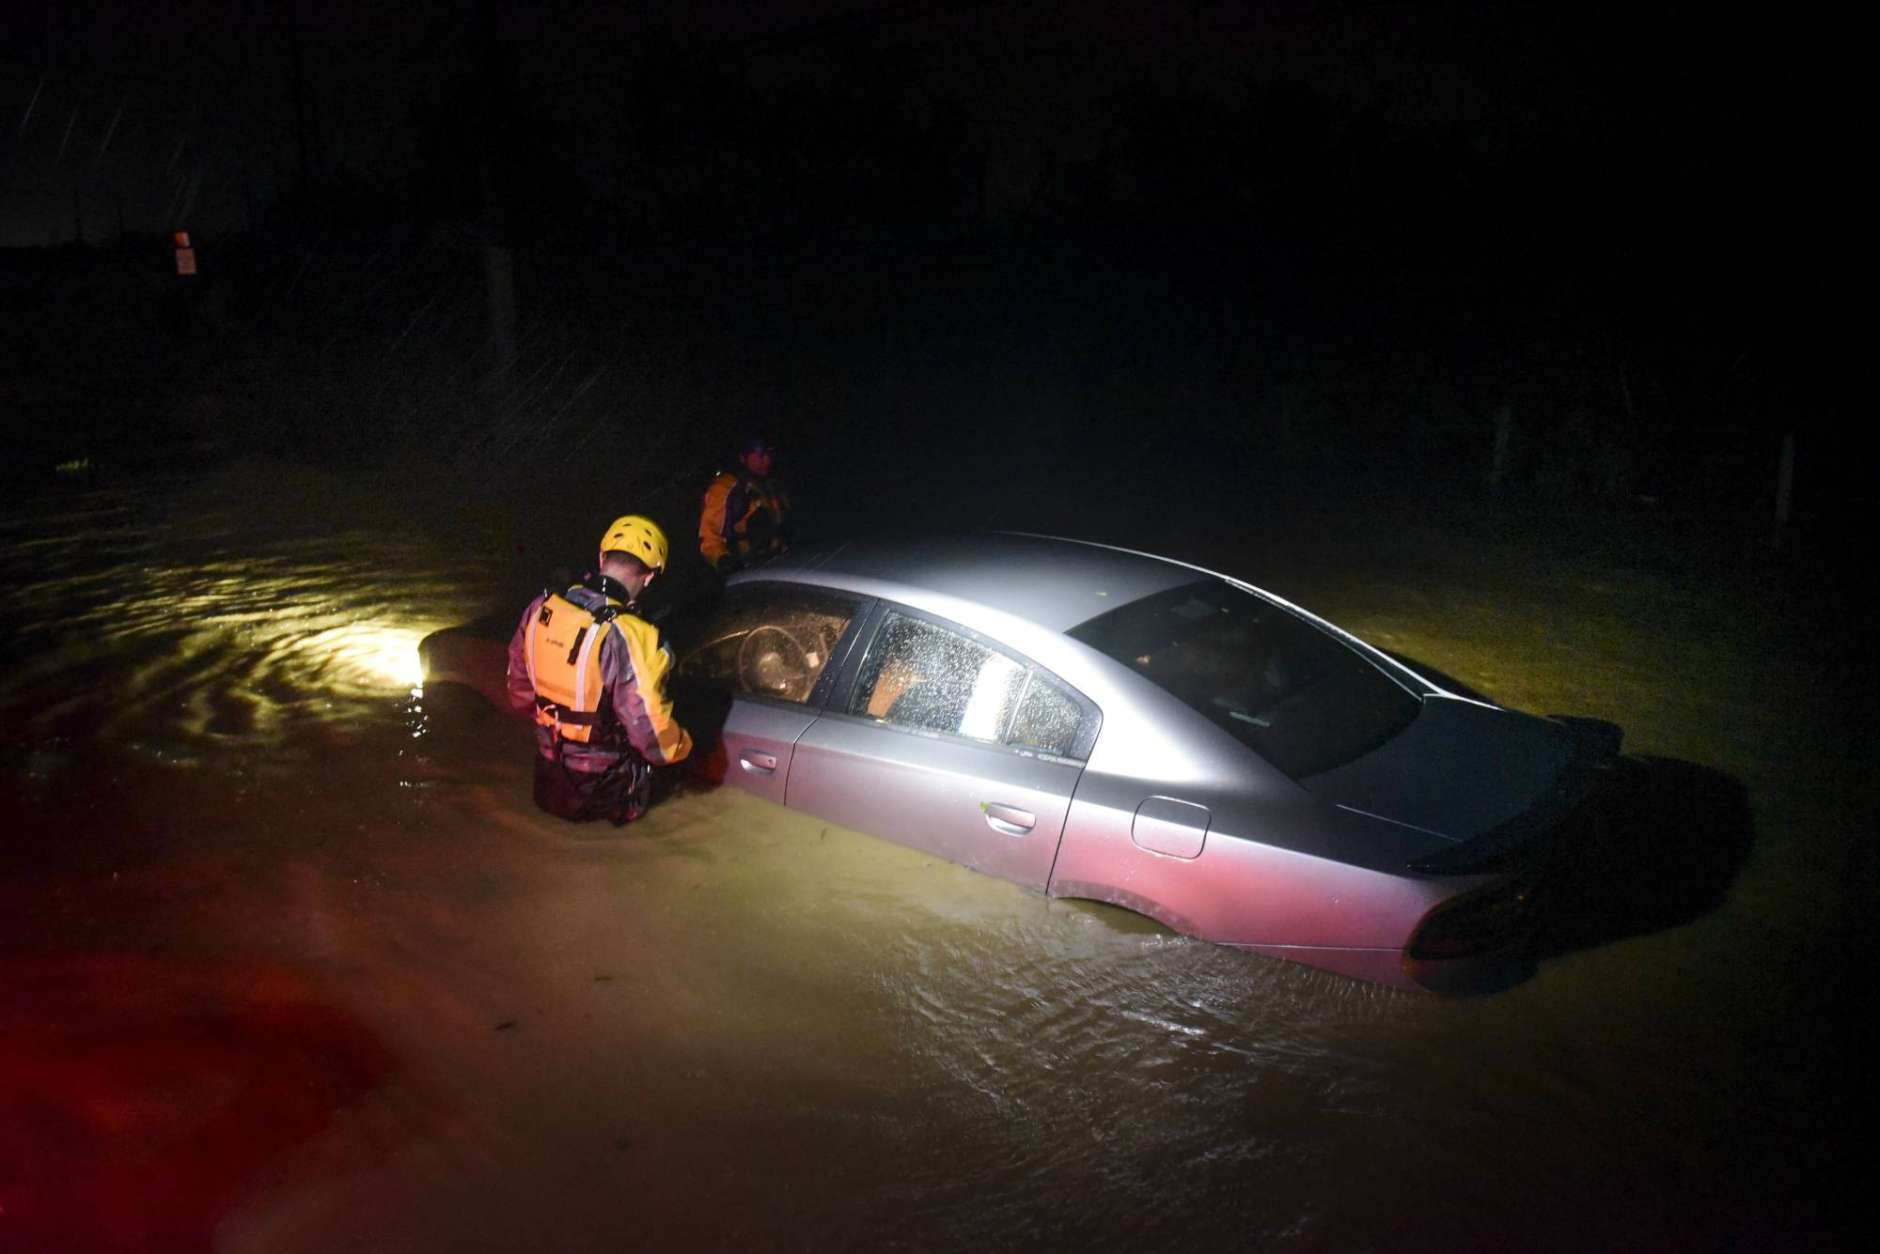 Rescue staff from the Municipal Emergency Management Agency investigate an empty flooded car during the passage of Hurricane Irma through the northeastern part of the island in Fajardo, Puerto Rico, Wednesday, Sept. 6, 2017. Hurricane Irma lashed Puerto Rico with heavy rain and powerful winds, leaving nearly 900,000 people without power as authorities struggled to get aid to small Caribbean islands already devastated by the historic storm. (AP Photo/Carlos Giusti)